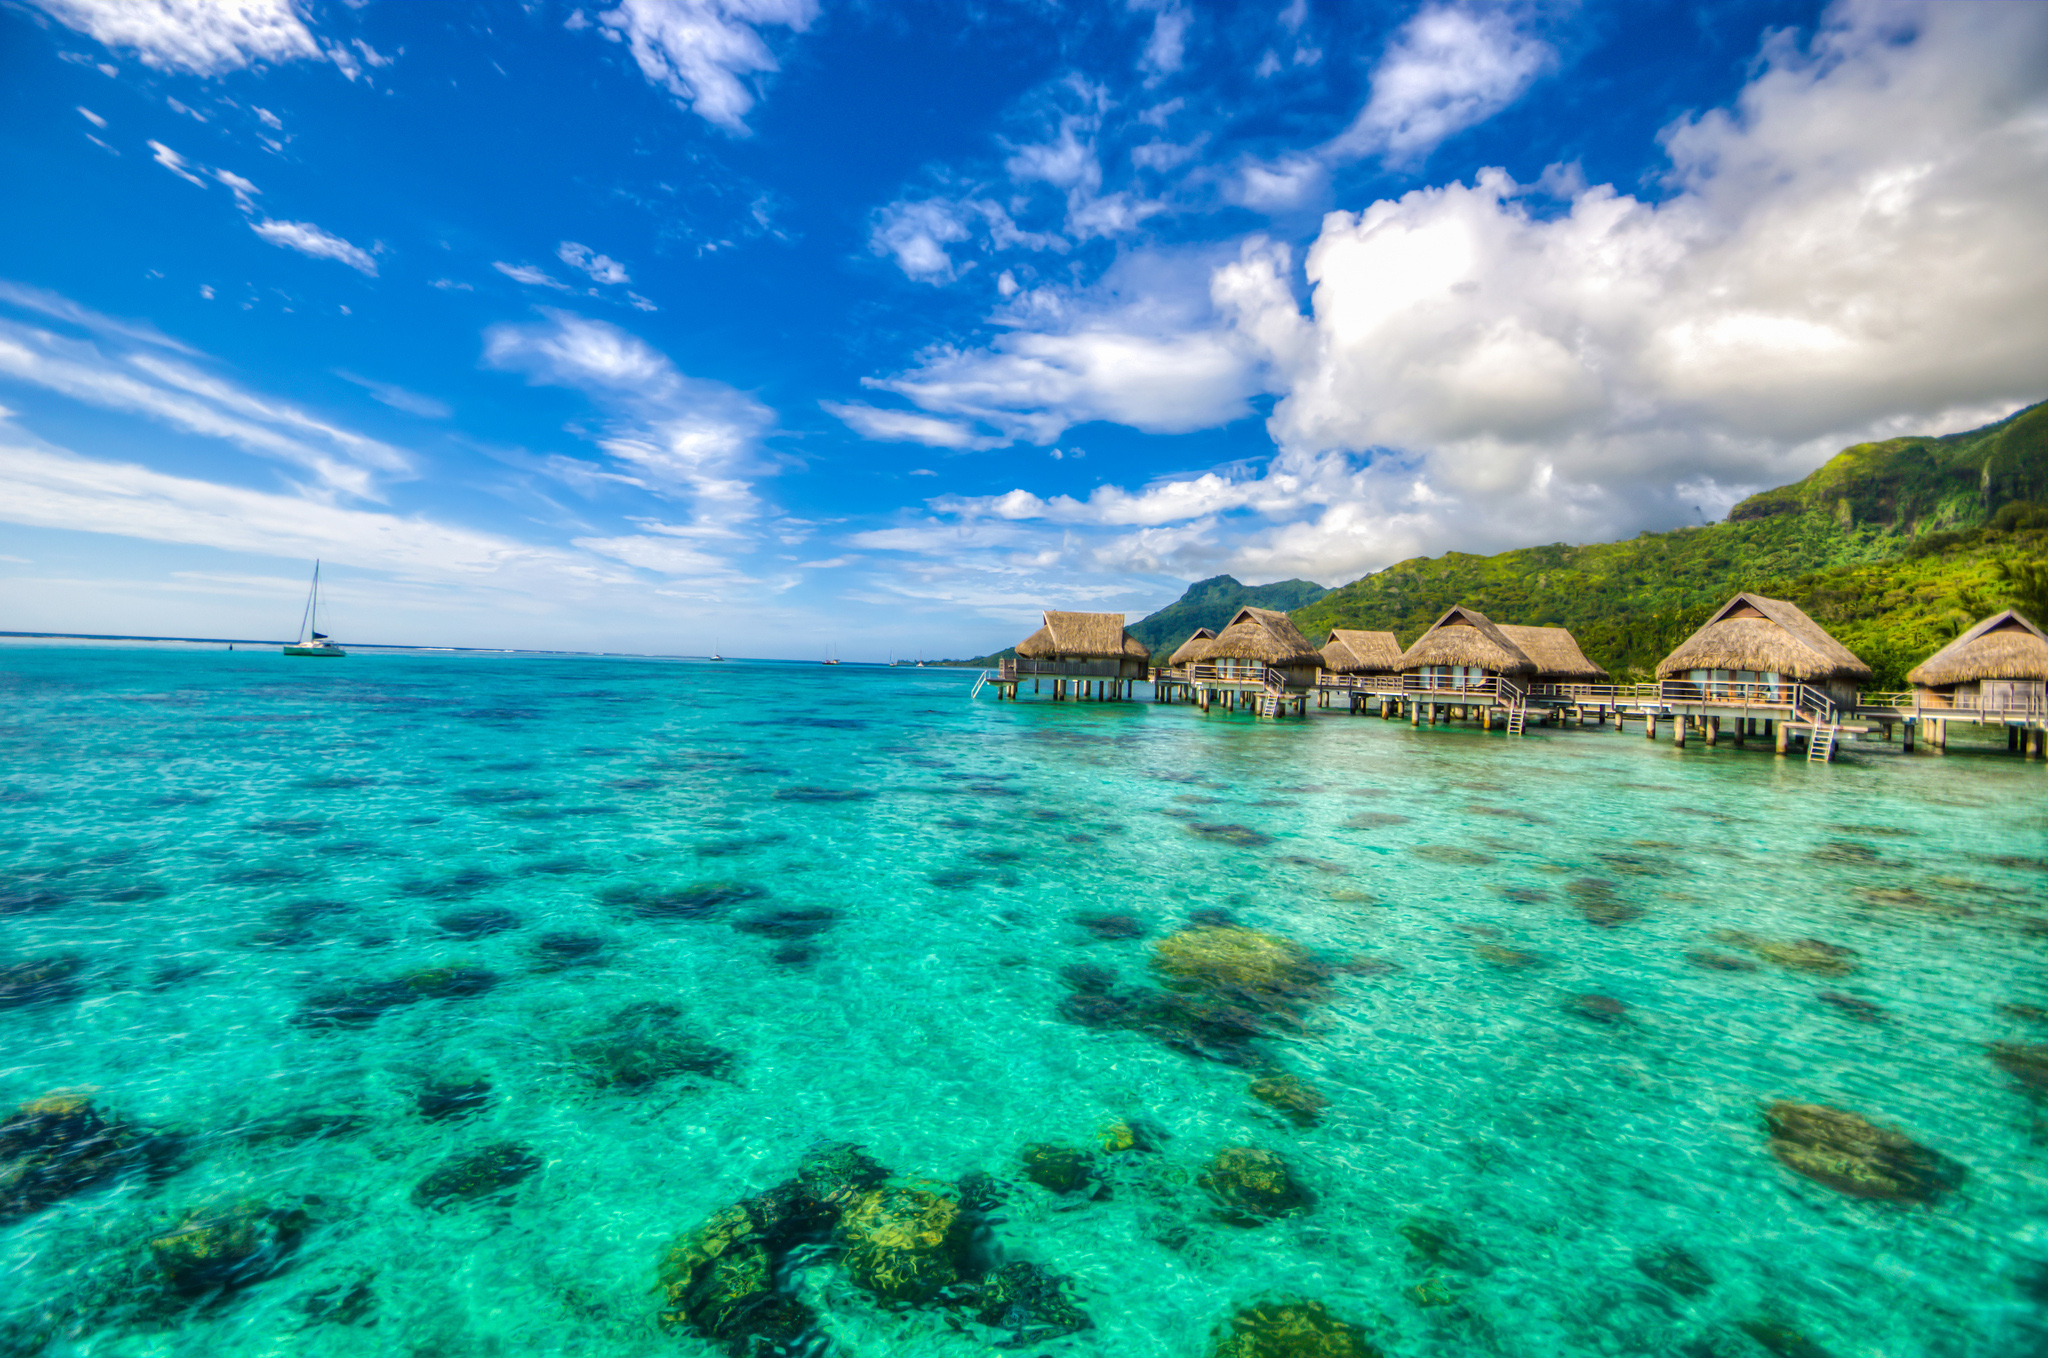 Tahiti and its islands are famous for over-water accommodation